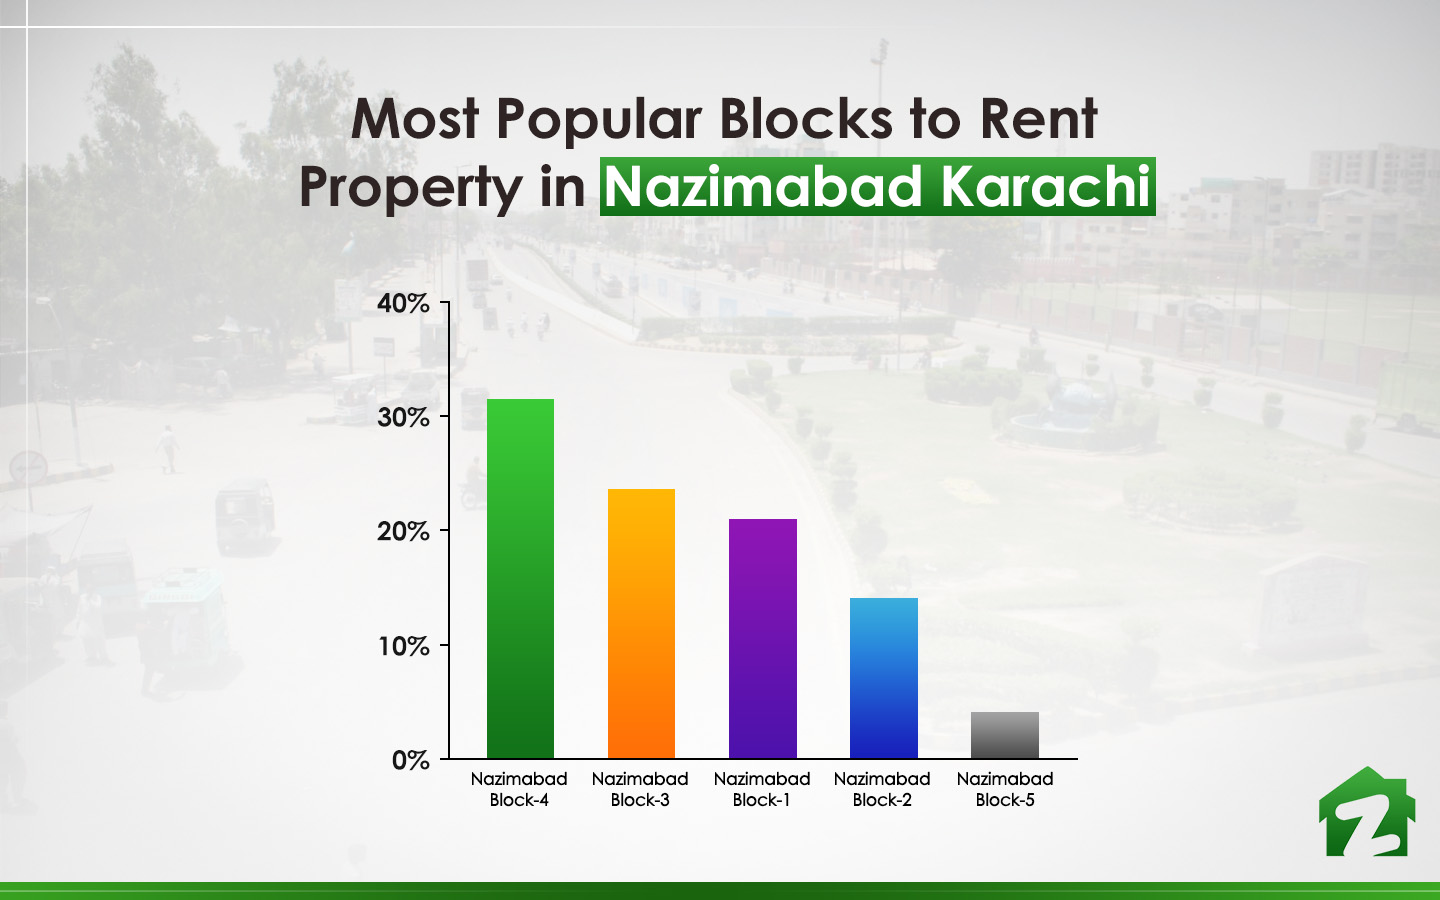 Nazimabad Block-4 tops the list for for renting property in Nazimabad